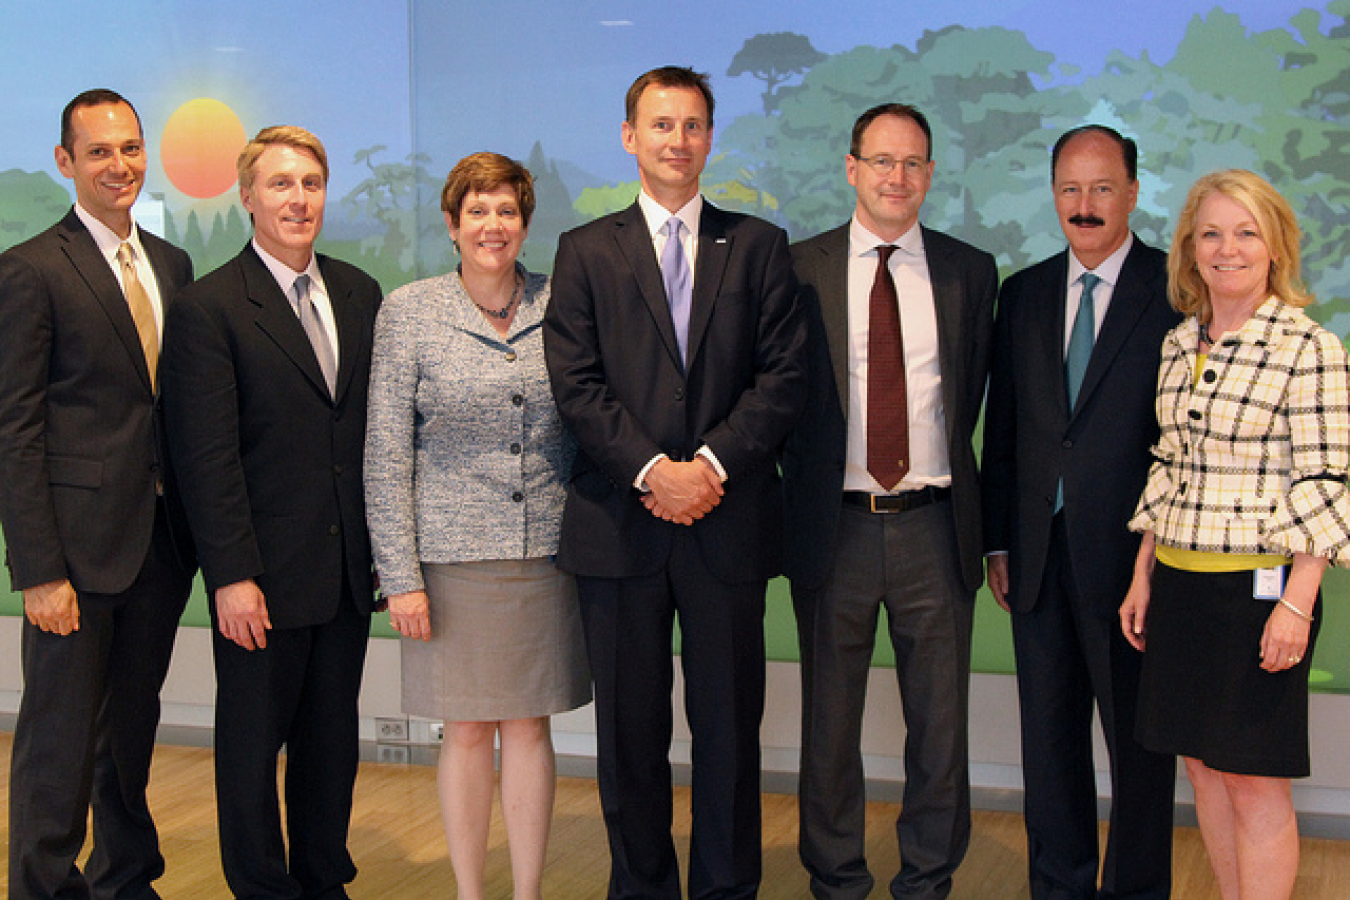 UK Secretary of State for Health Jeremy Hunt and Dr. Mark Davies visit the Center for Total Health 25422